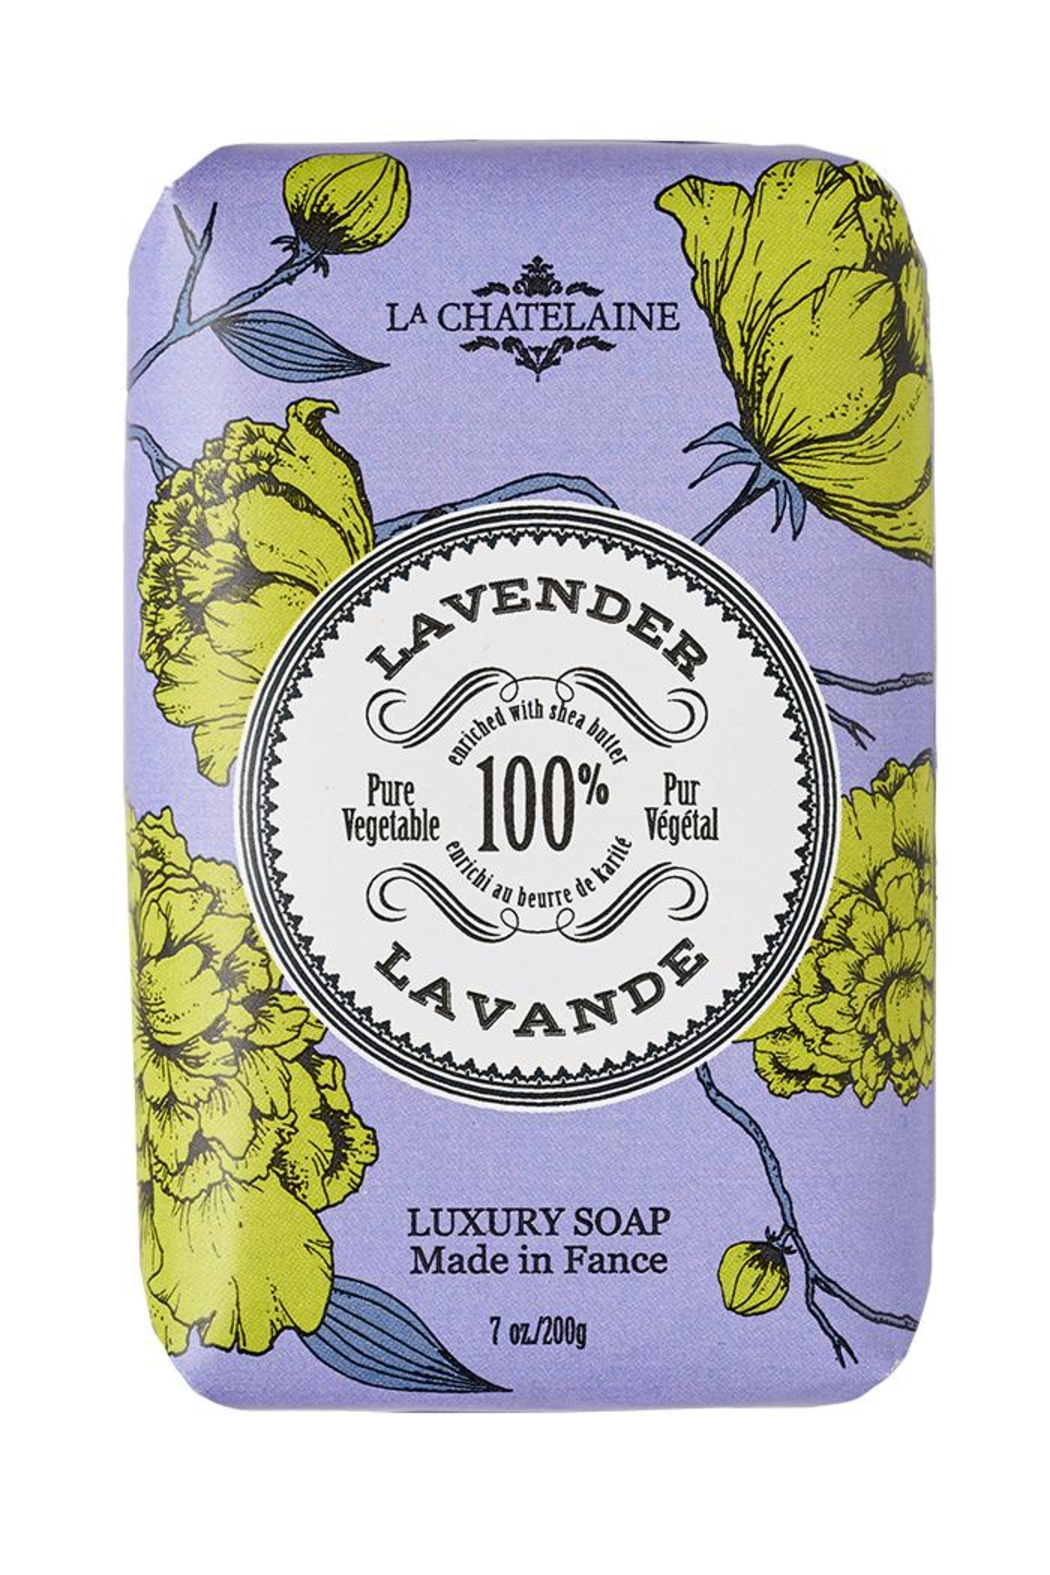 La Chatelaine Lavender Luxury Soap - Main Image